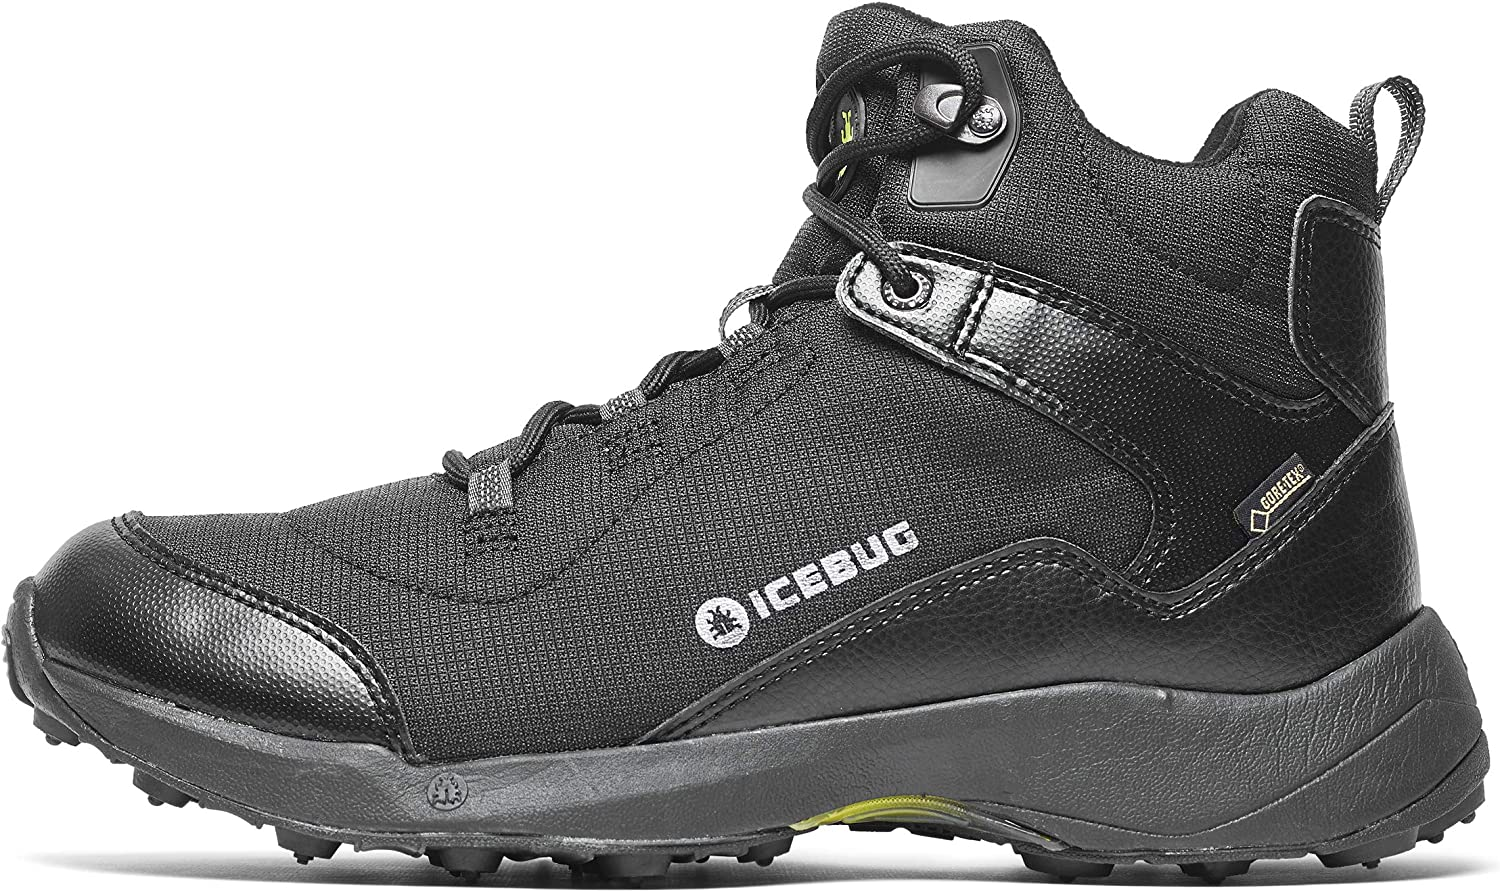 Icebug Gore-TEX Waterproof Insulated Boots for Men Pace2 BUGrip GTX Mens Outdoor Winter Walking Hiking Boot – Studded Traction Sole